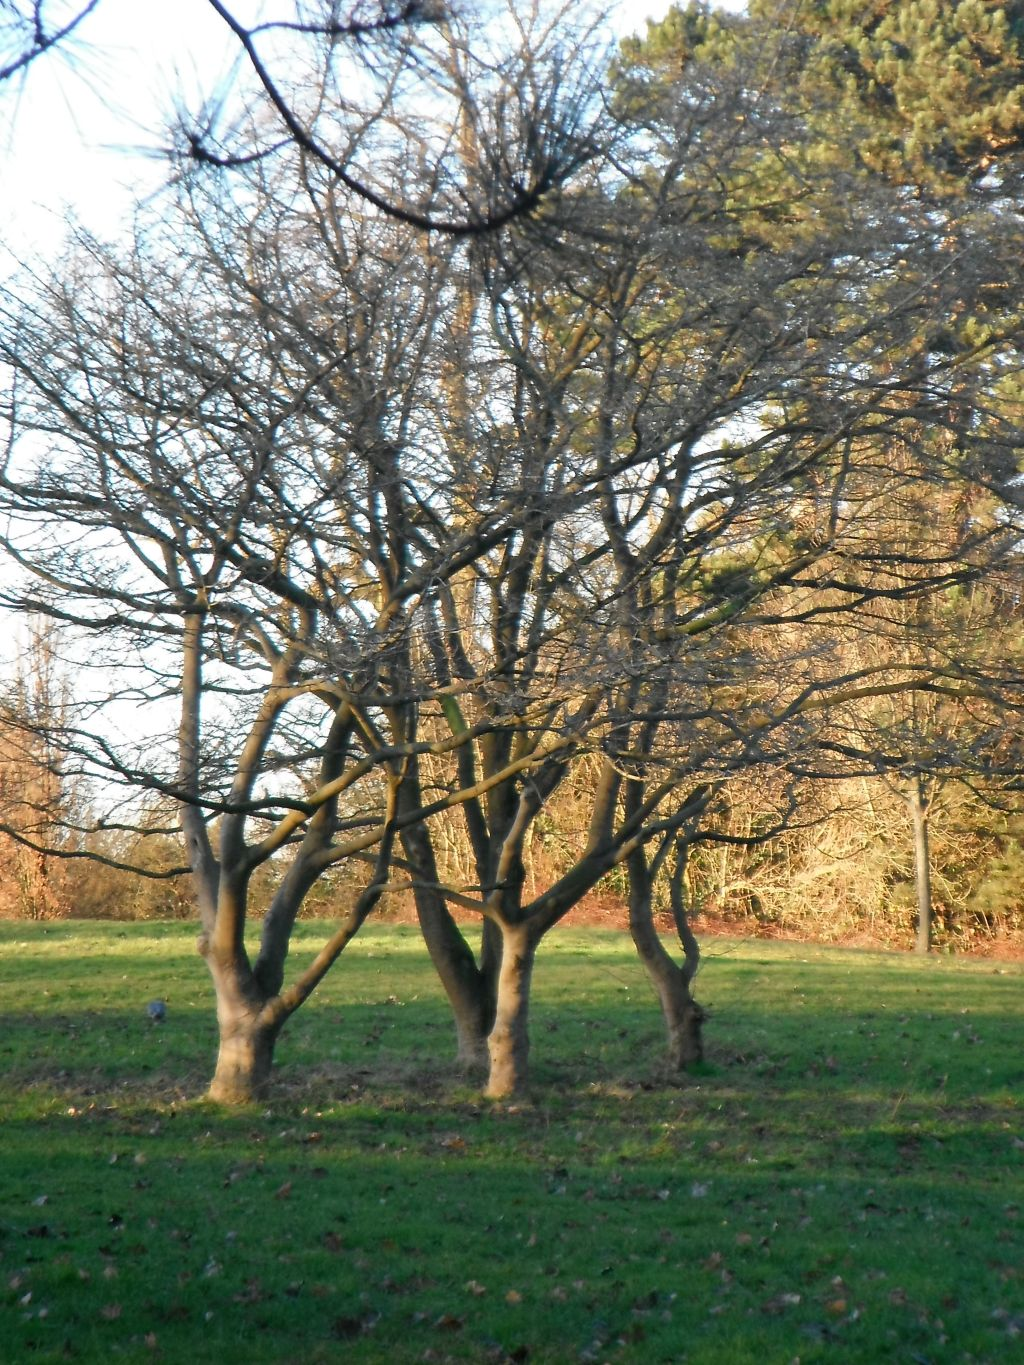 photo taken by me - trees in Bruntwood Park, Manchester